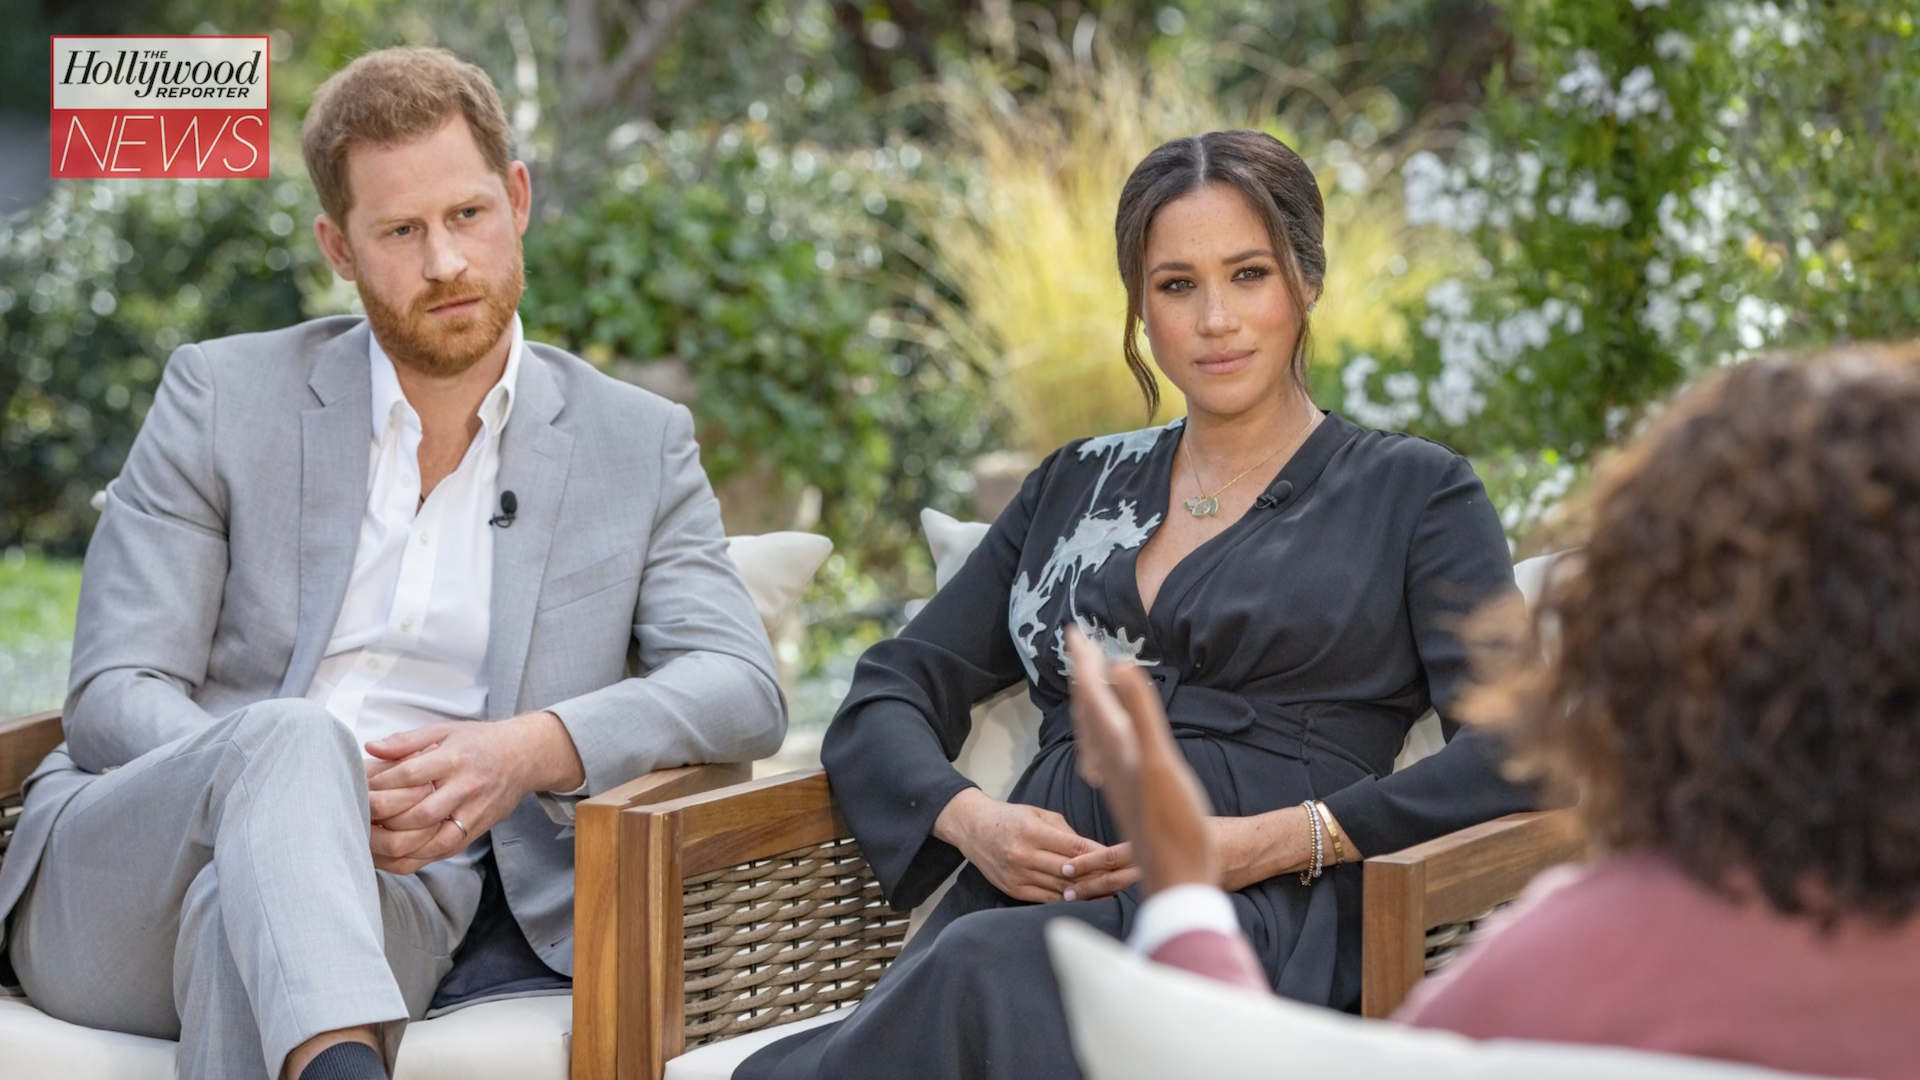 Meghan Markle Reveals Palace Concerns Over Archie's Skin Color in 'Oprah With Meghan and Harry' | THR News